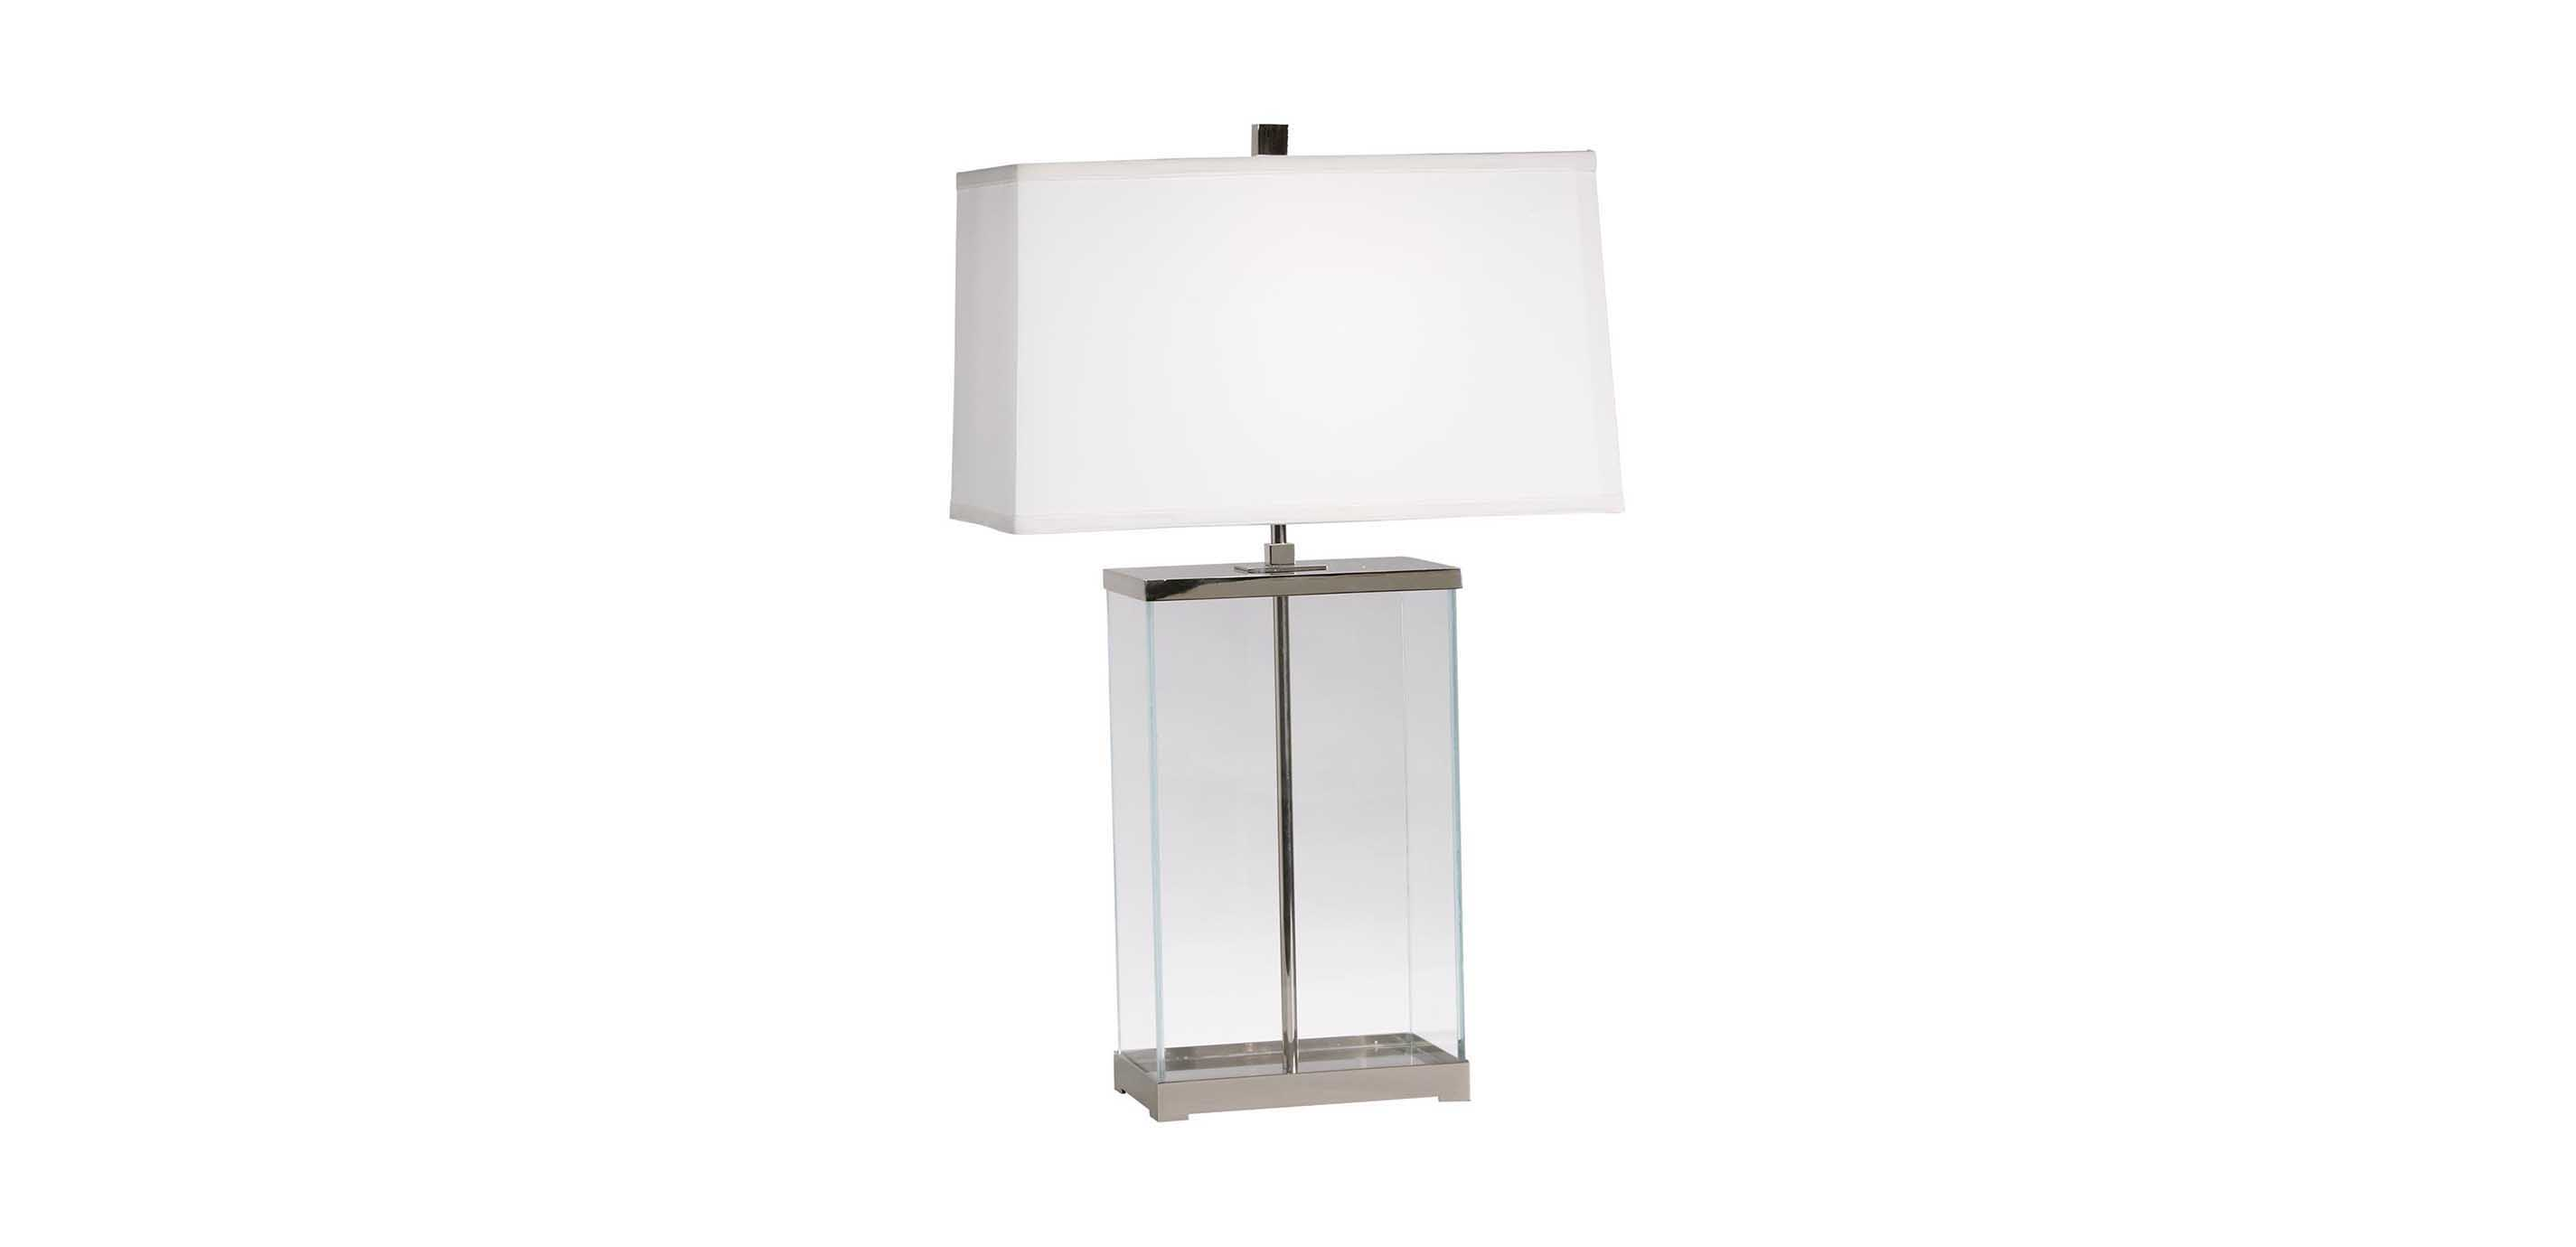 Rectangular Glass Table Lamp Ethan Allen